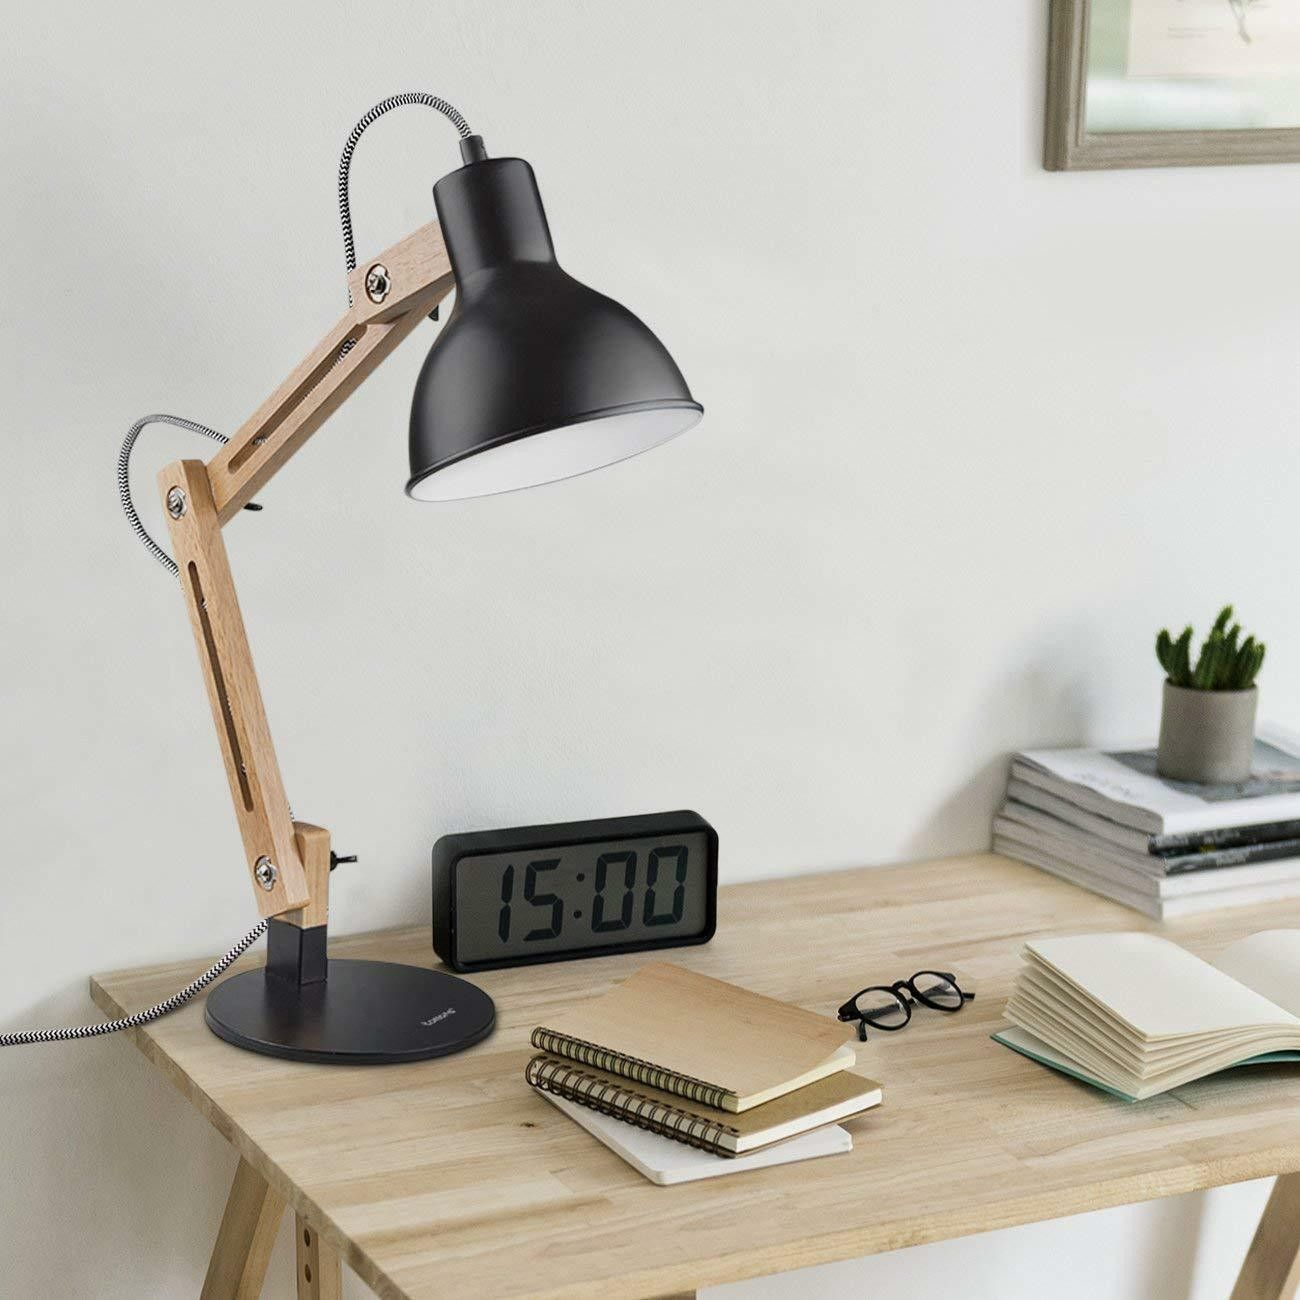 Decorate Ideas White And Wood Desk Lamp Interior Decorating White And Wood Desk Lamp Decorate Ideas Tomons Modern In 2020 Desk Lamp Wood Desk Lamp Table Lamp Design